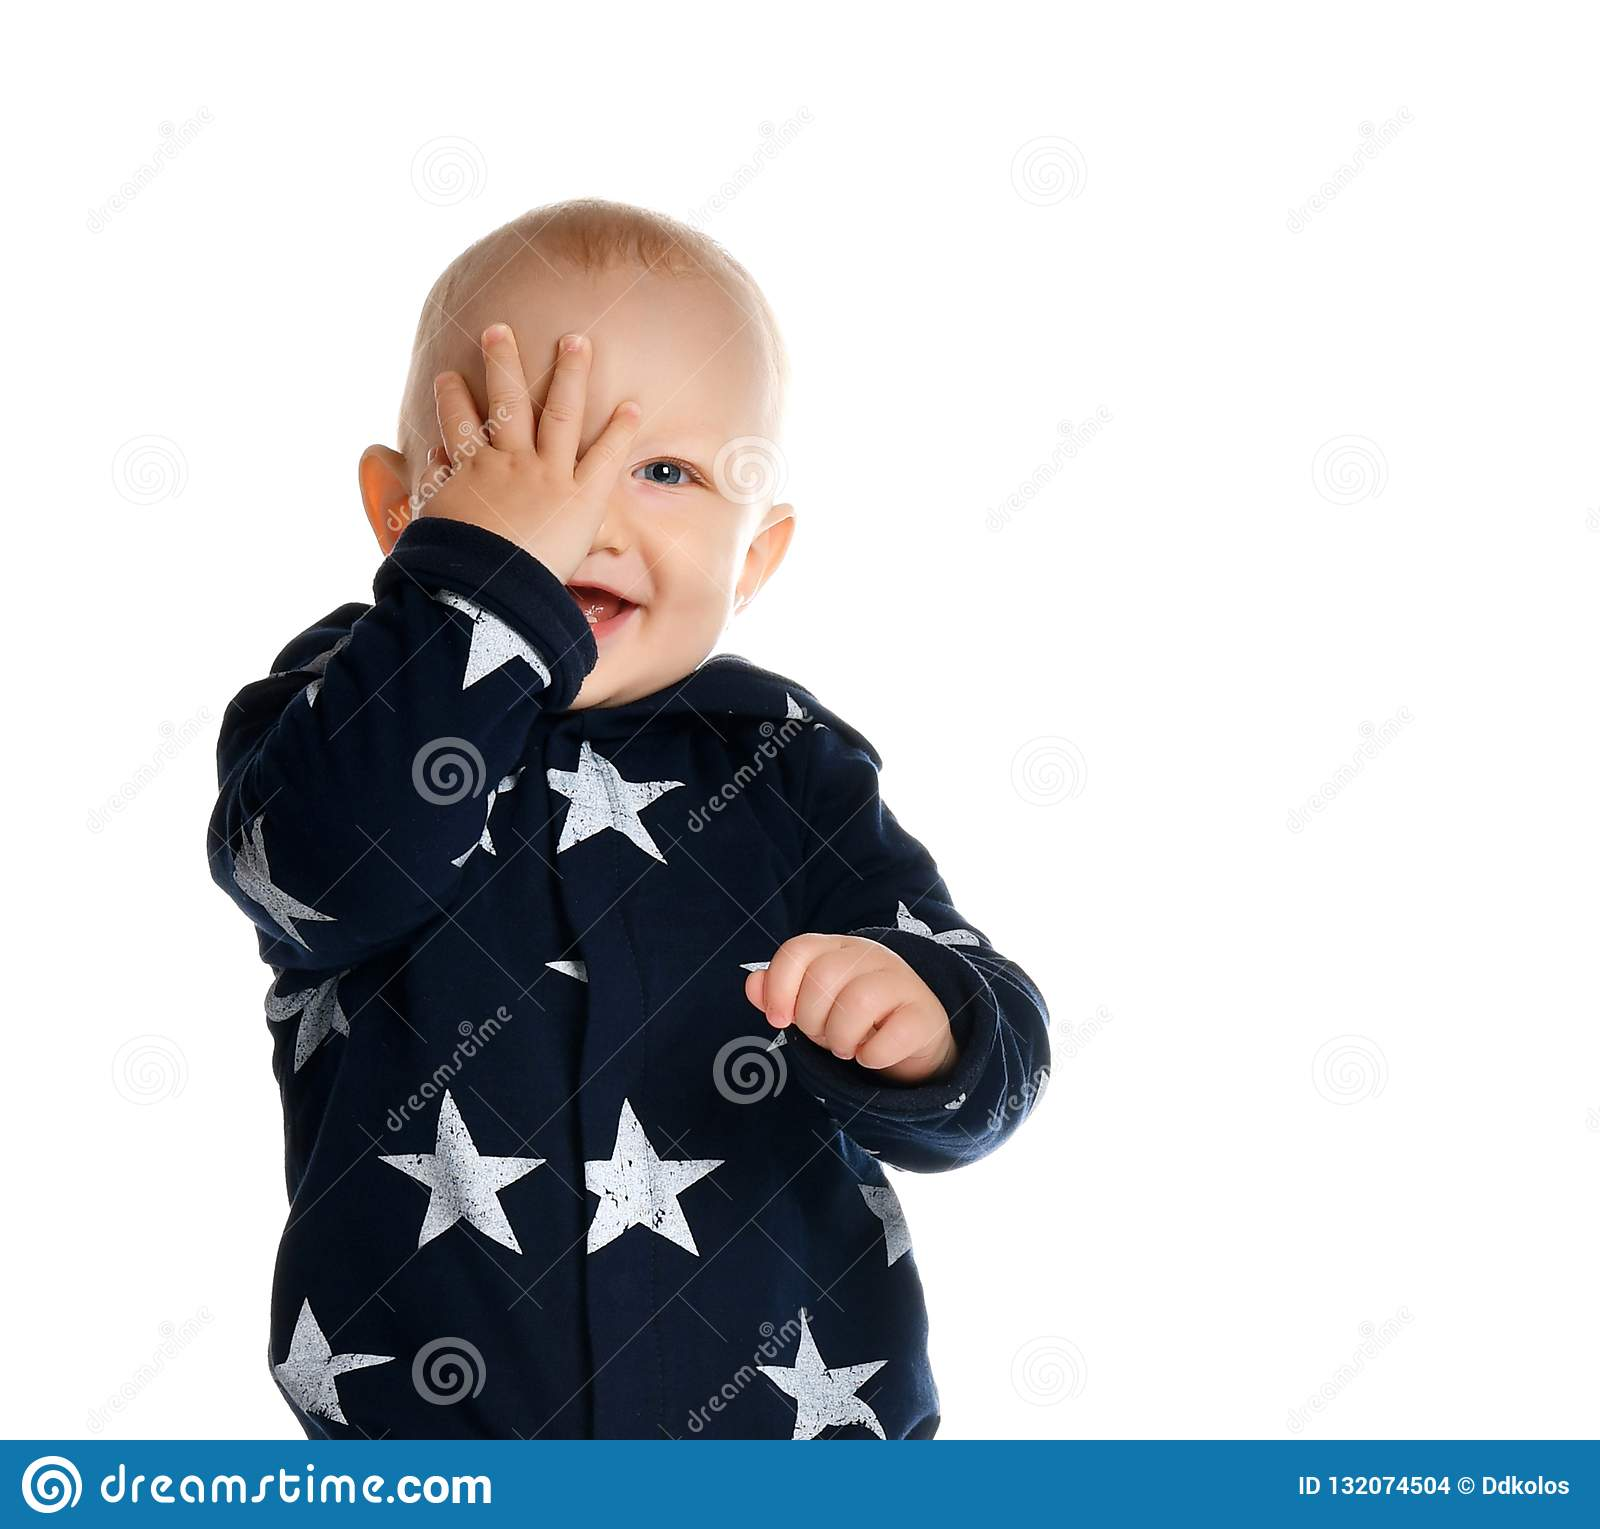 A cute 1 year old stands in a white studio setting.